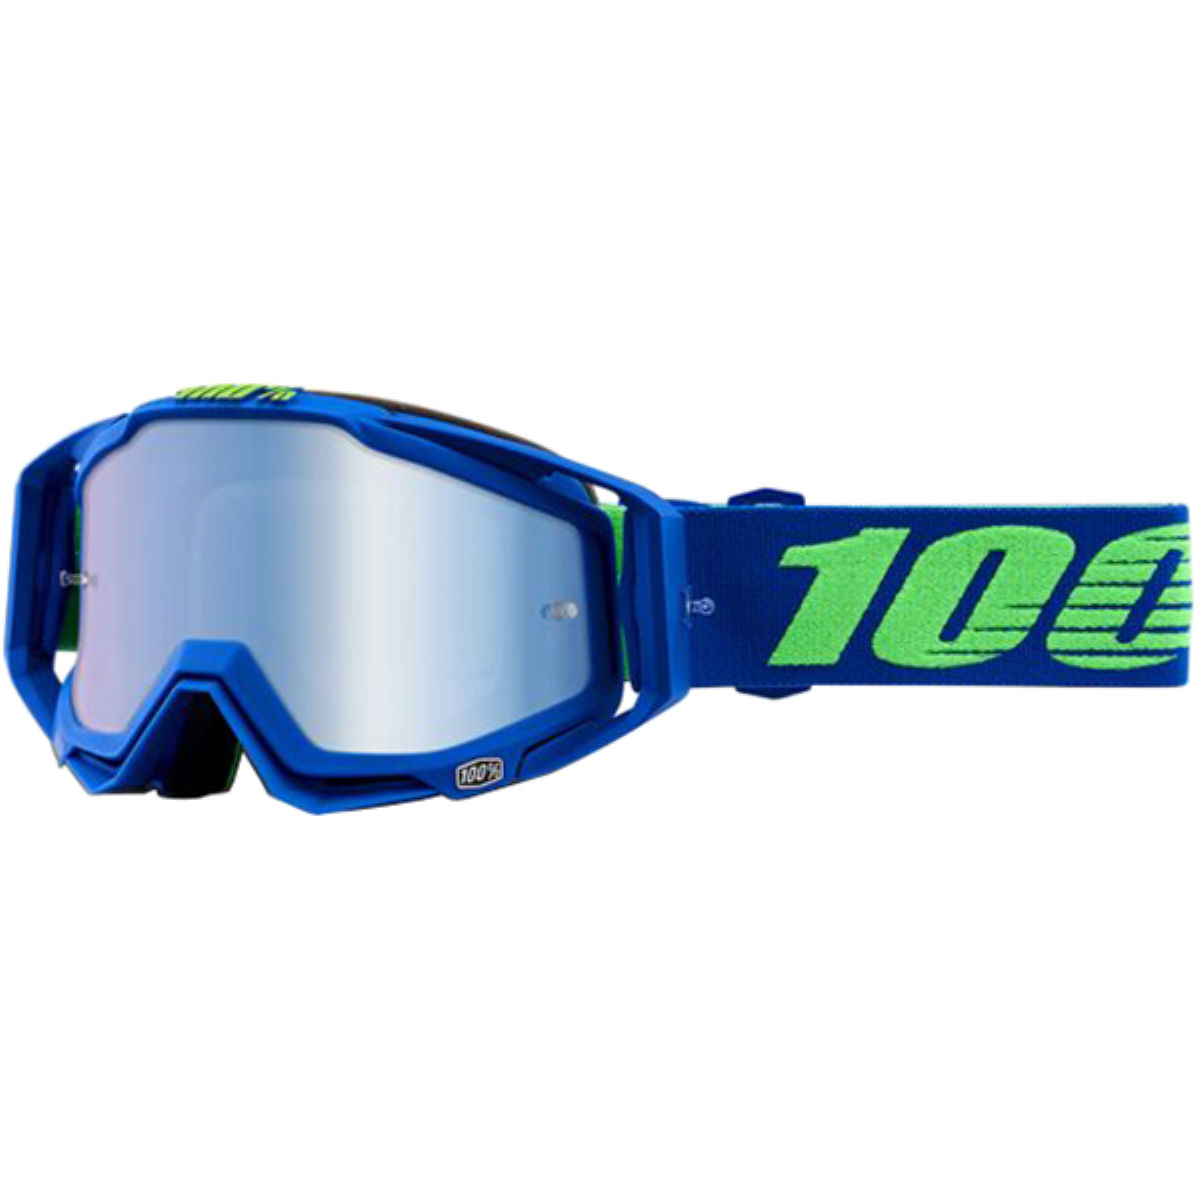 100% Racecraft Goggles - Mirror Lens - One Size Blue 3